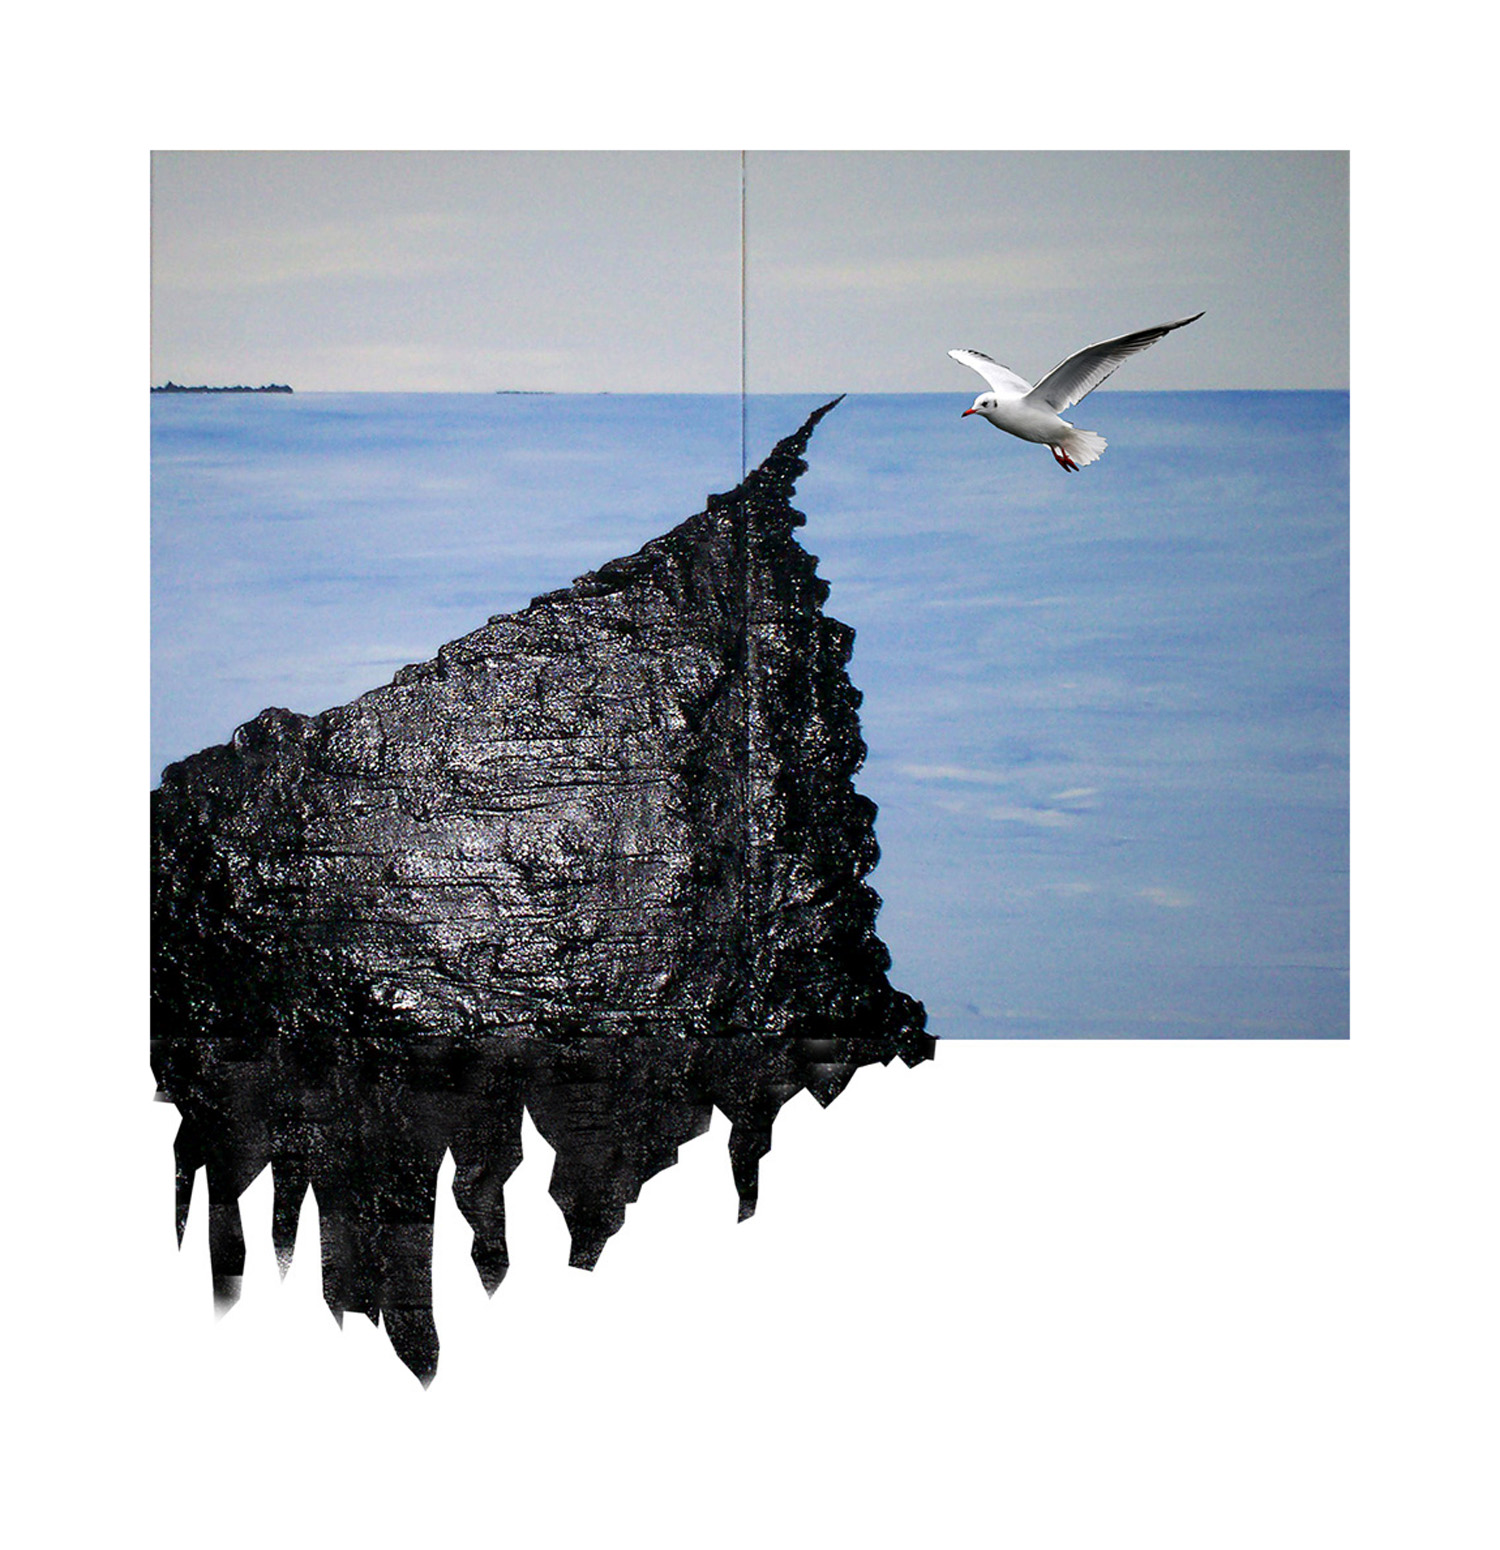 painting- oil spill on the bay